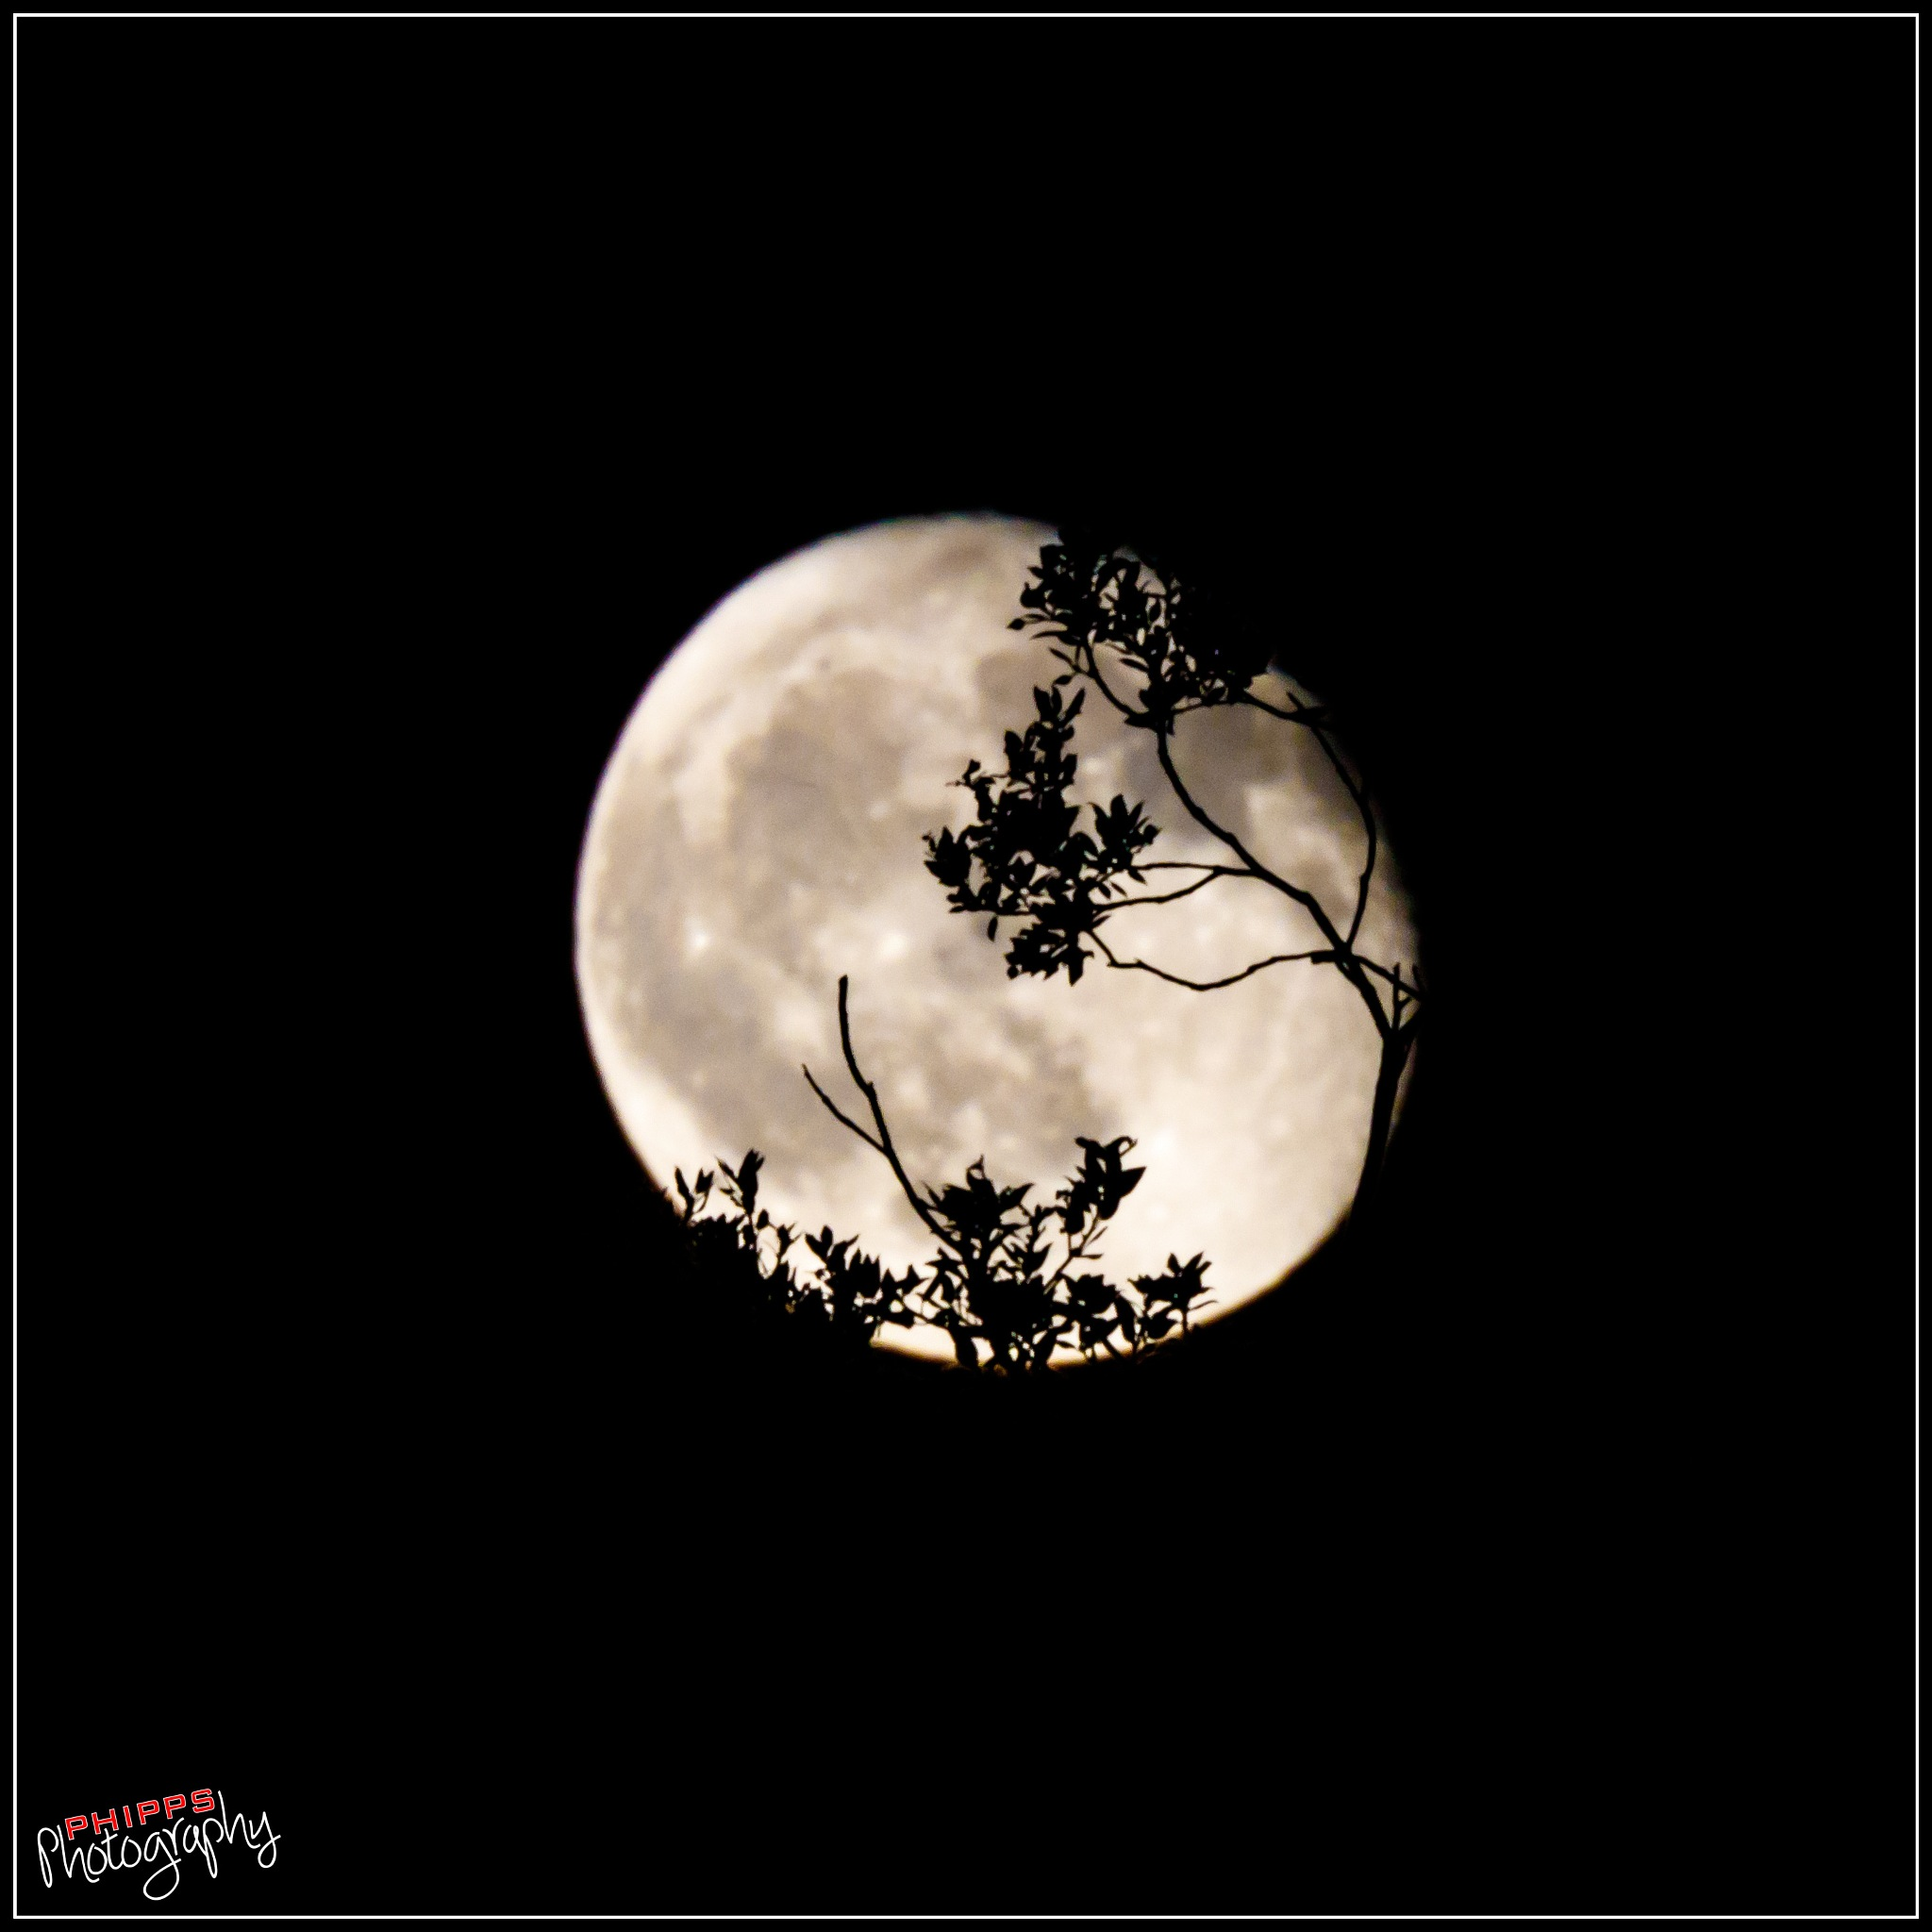 Tonight's Moon Rising Through the Trees... by PhippsPhotography